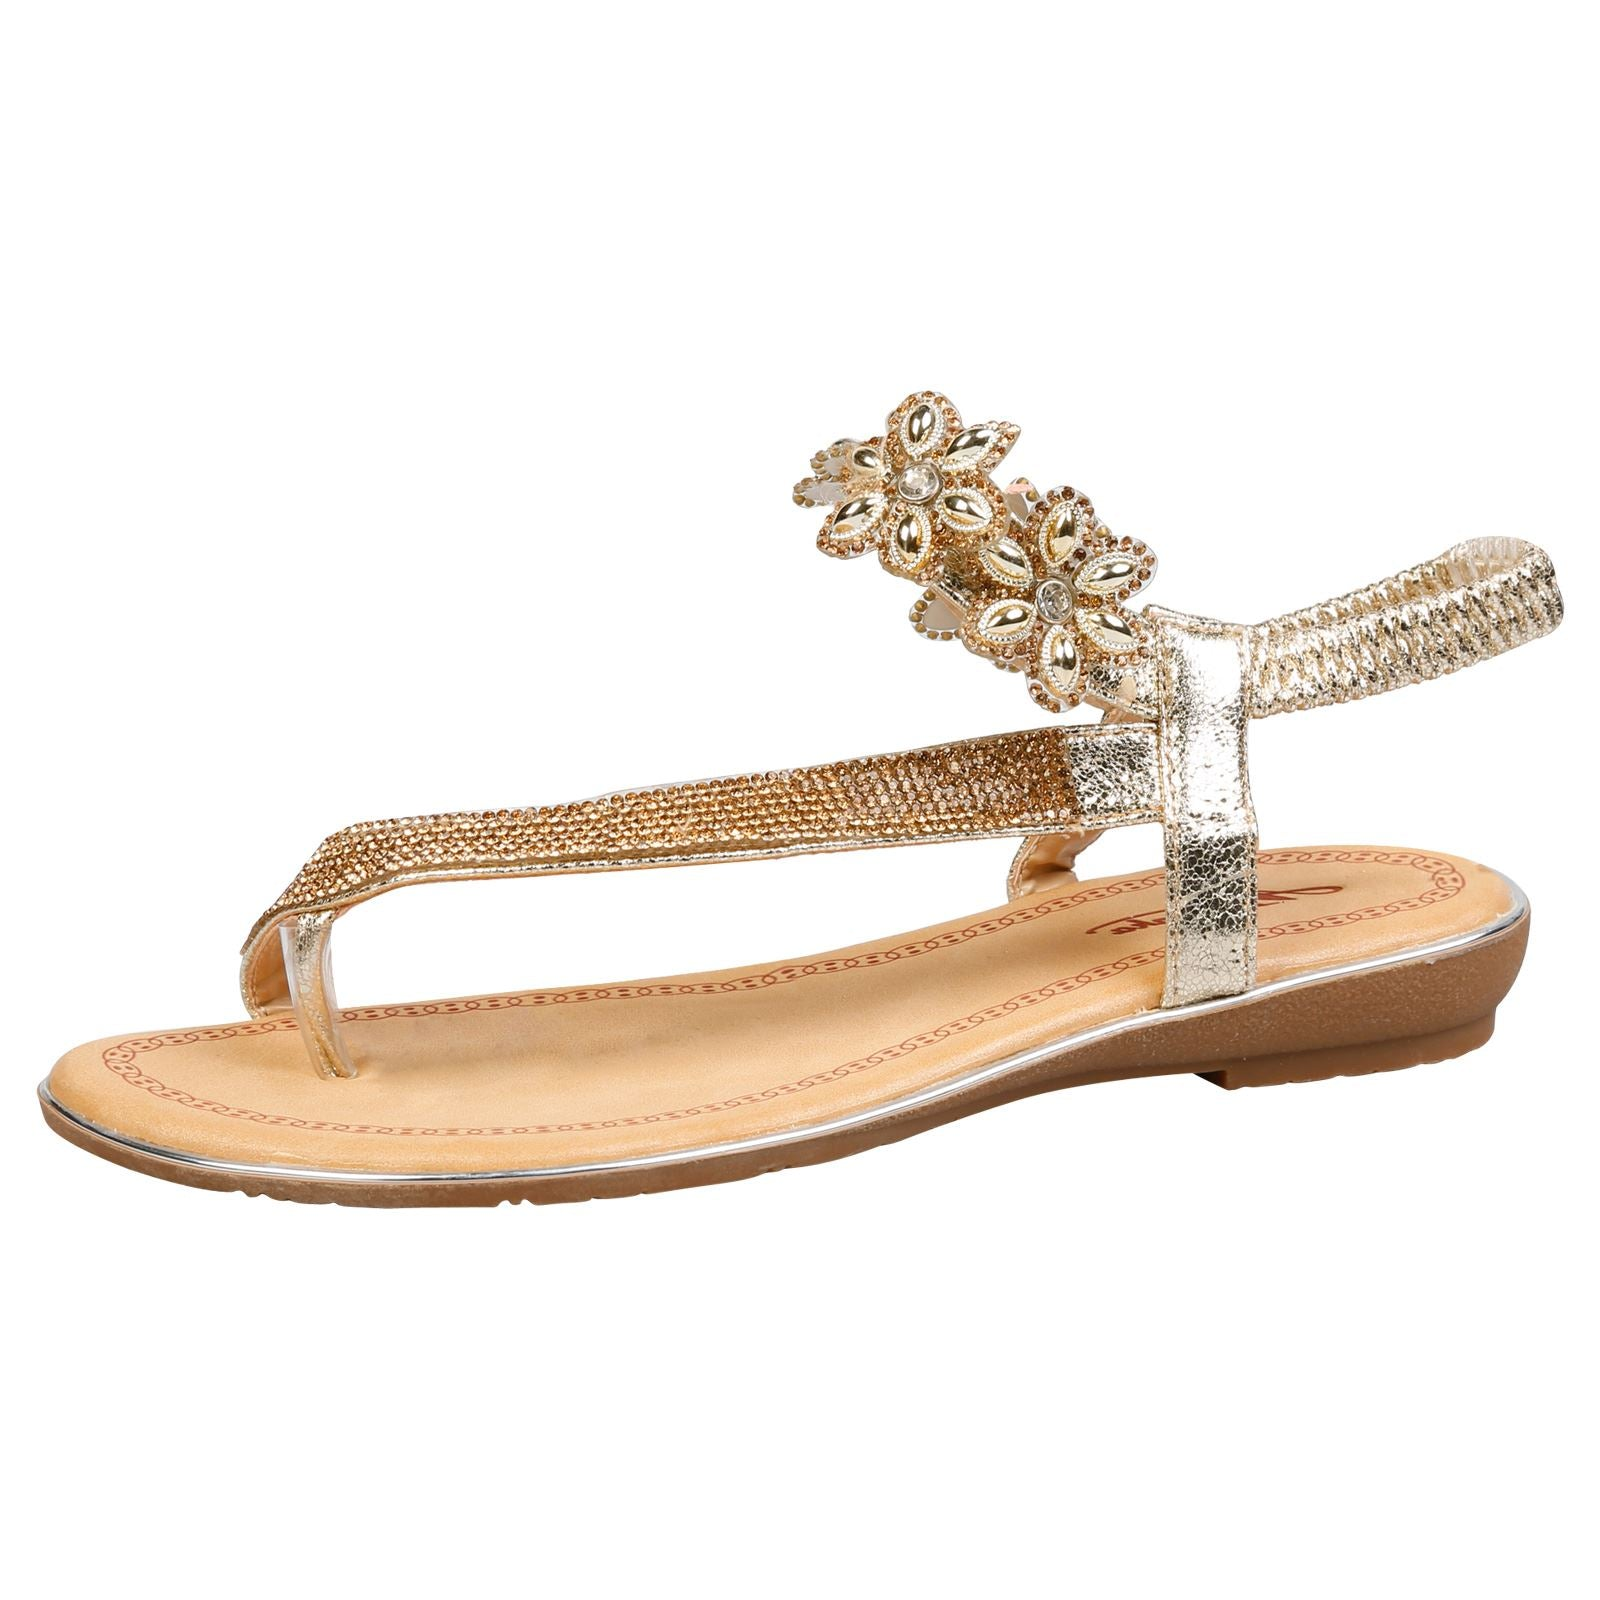 Celine Floral Diamante Sandals in Gold